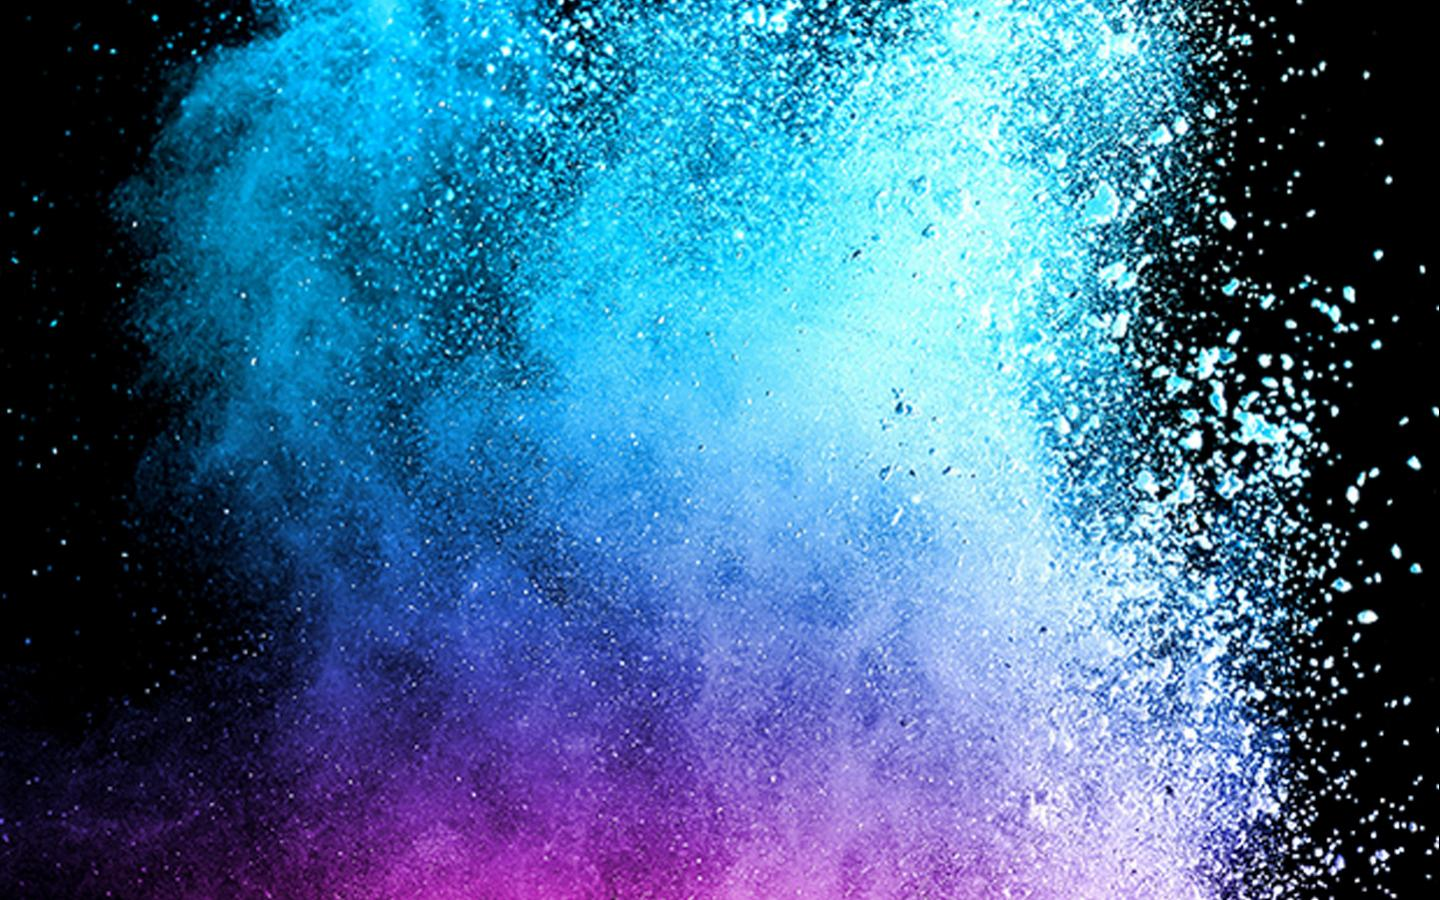 Hd Wallpaper For Samsung Galaxy J1: Abstract Colorful Powder With Dark Background For Samsung